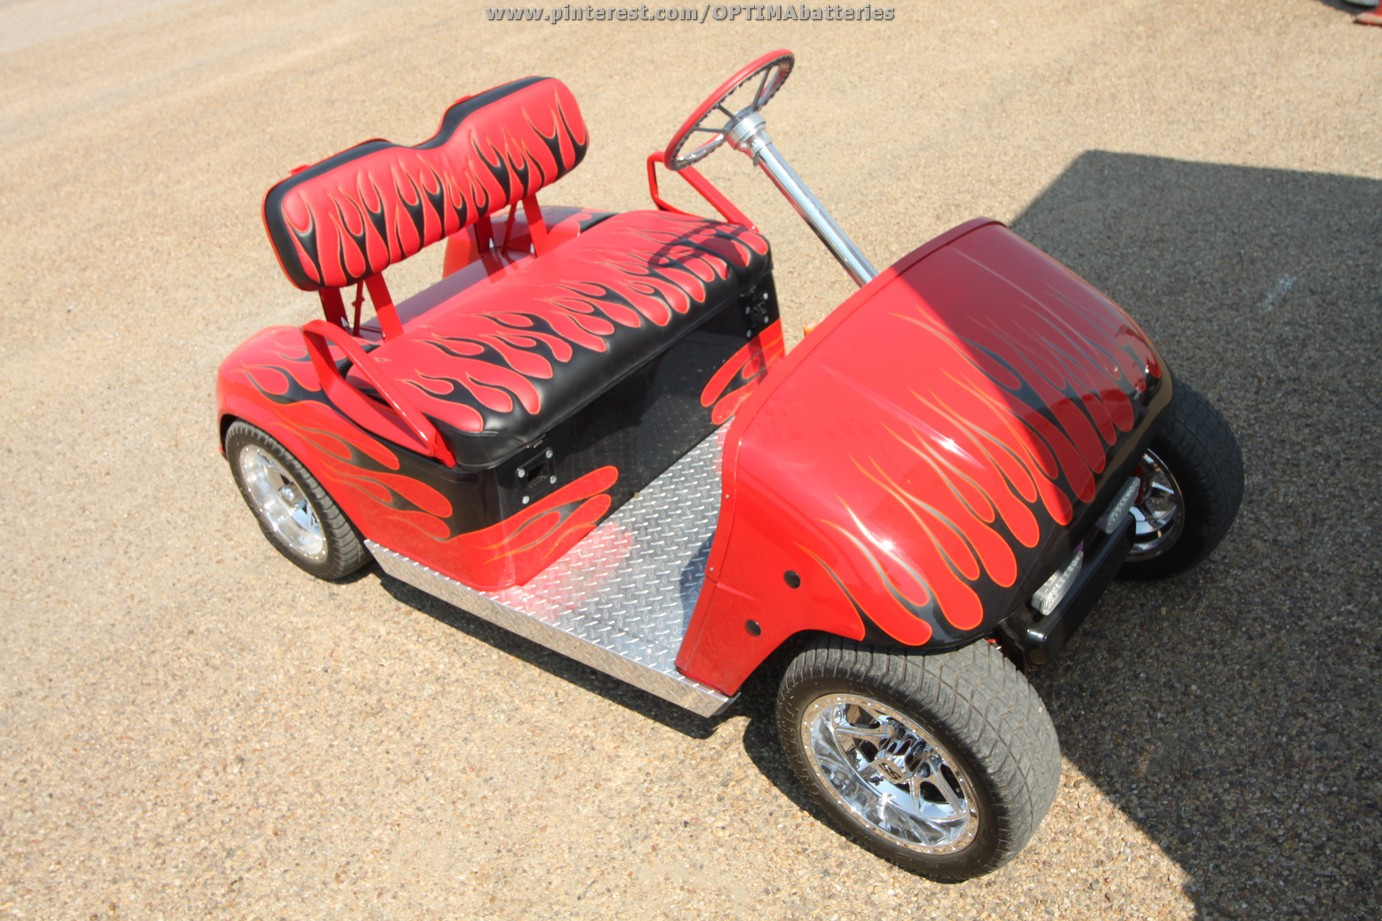 OPTIMA Mailbox- Does OPTIMA make golf cart batteries?